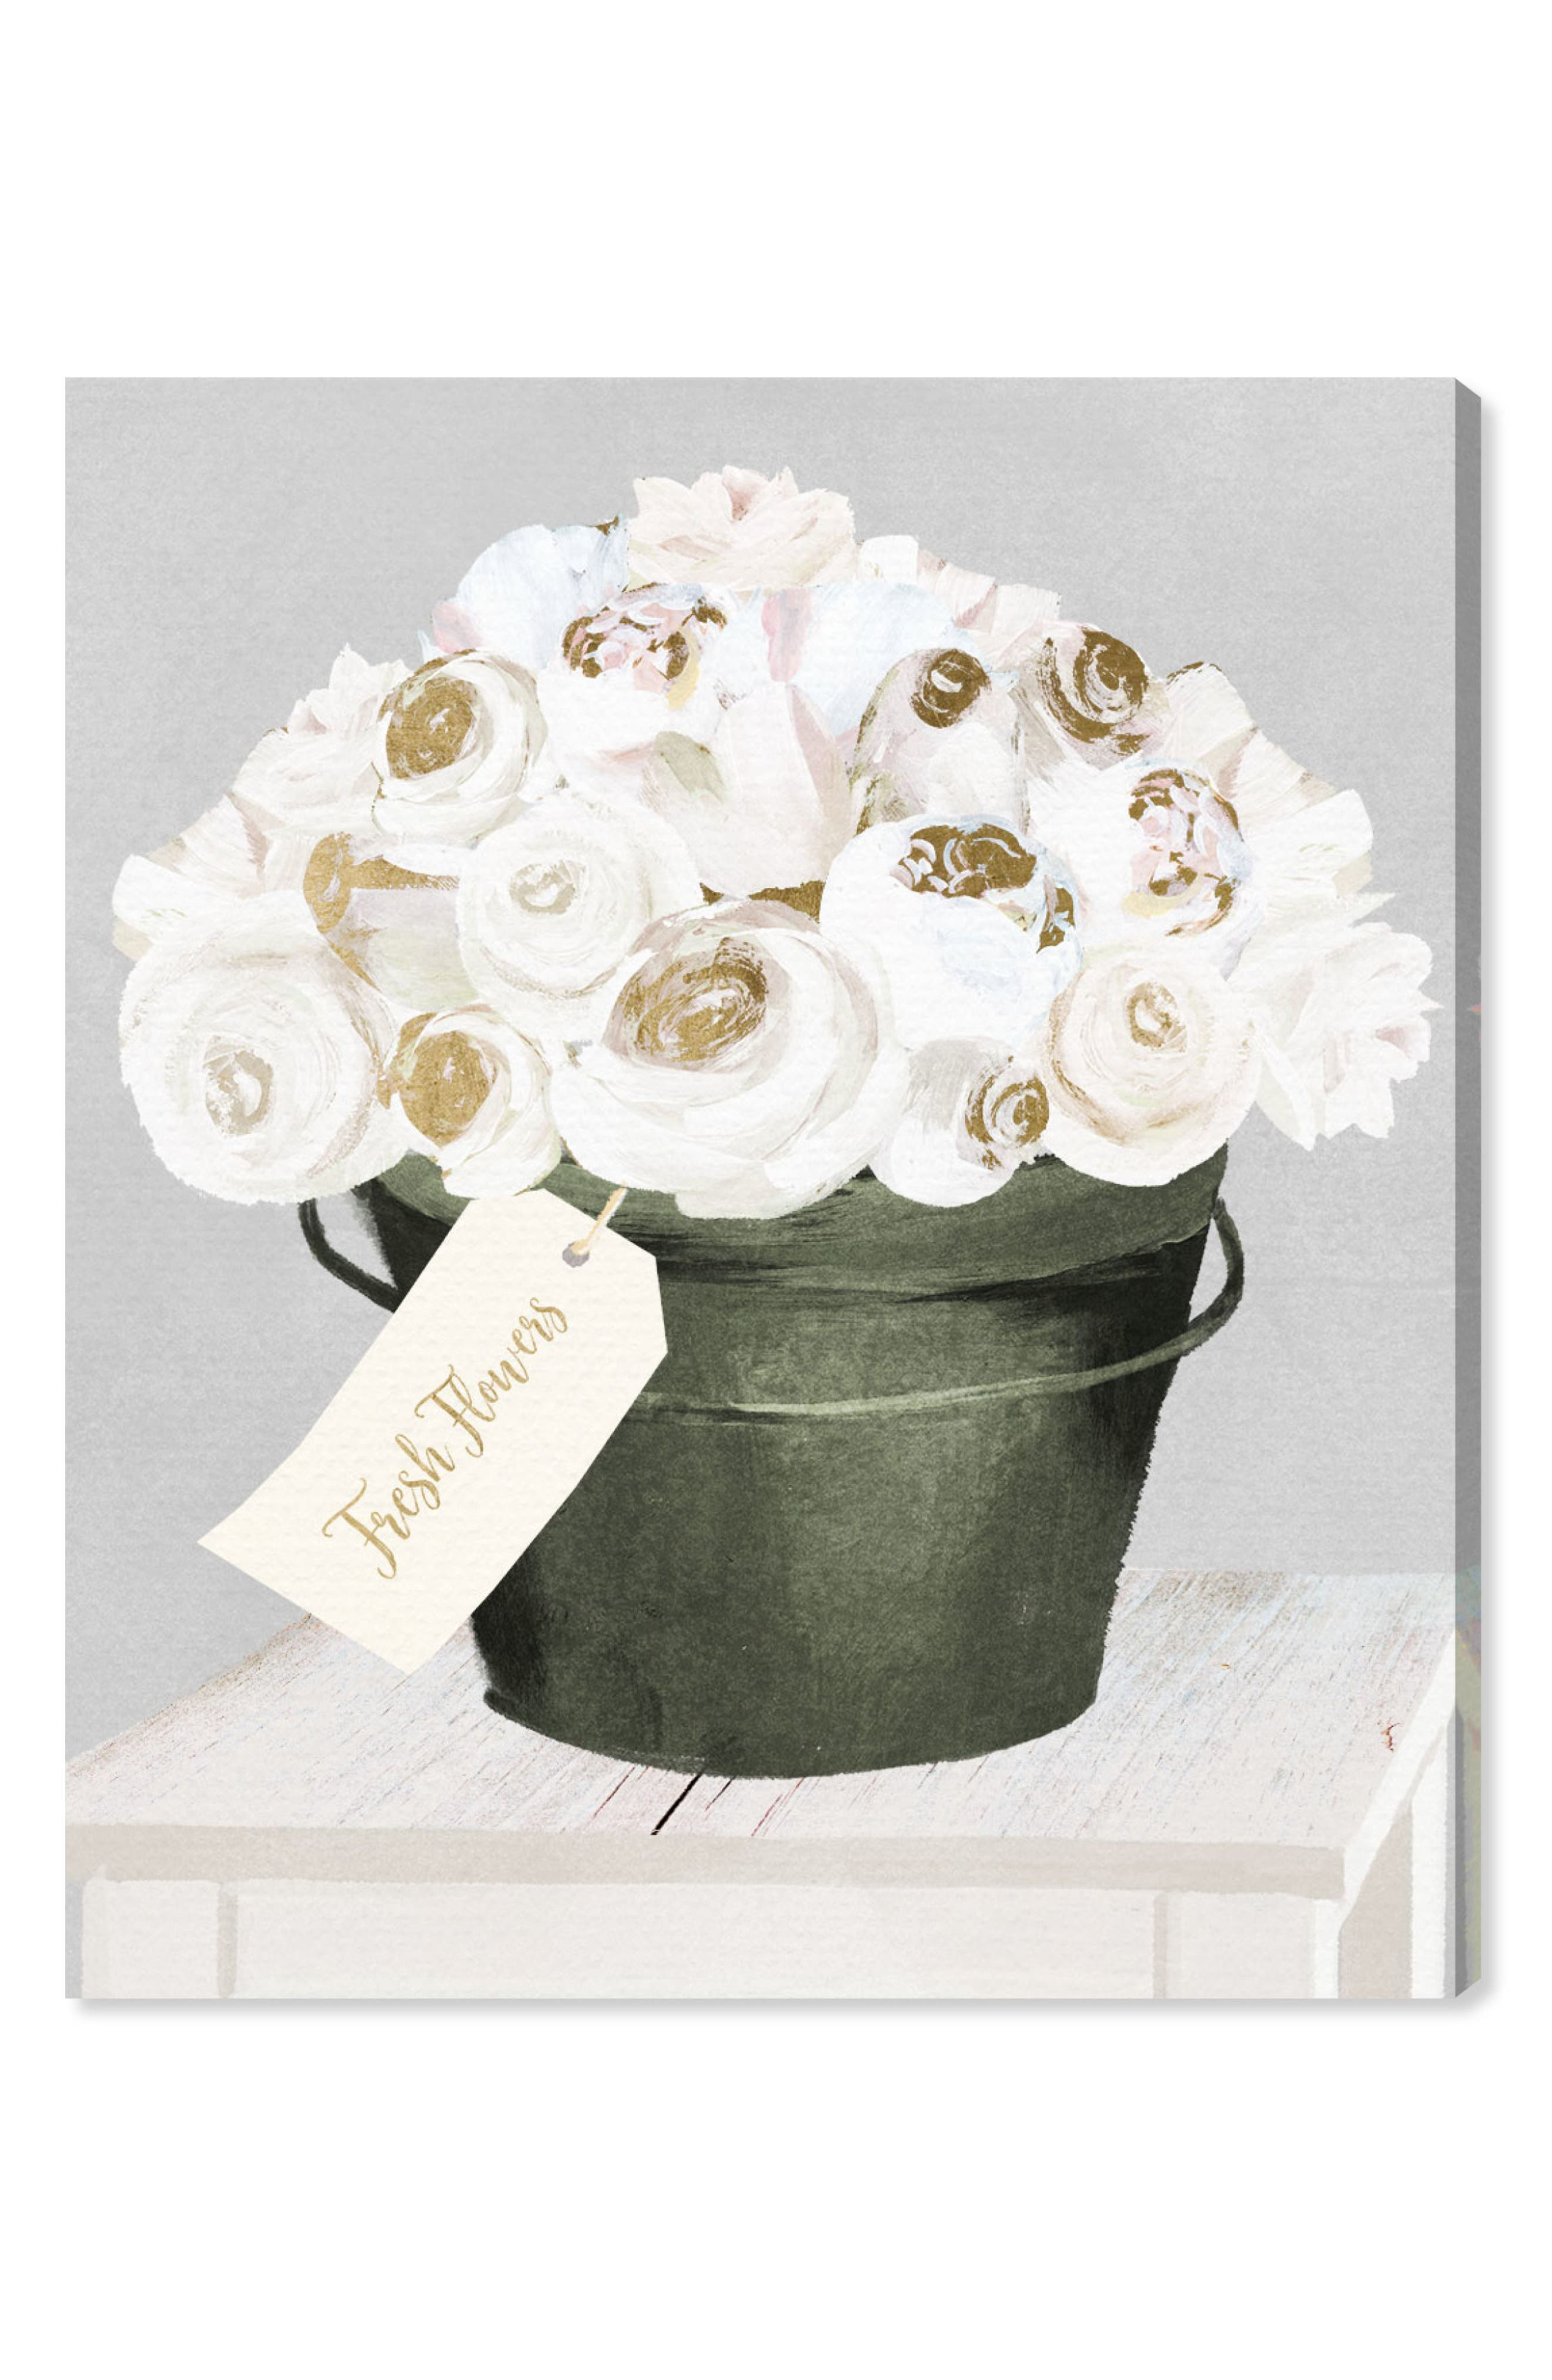 Alternate Image 1 Selected - Oliver Gal Bucket Full of Gold Roses Canvas Wall Art